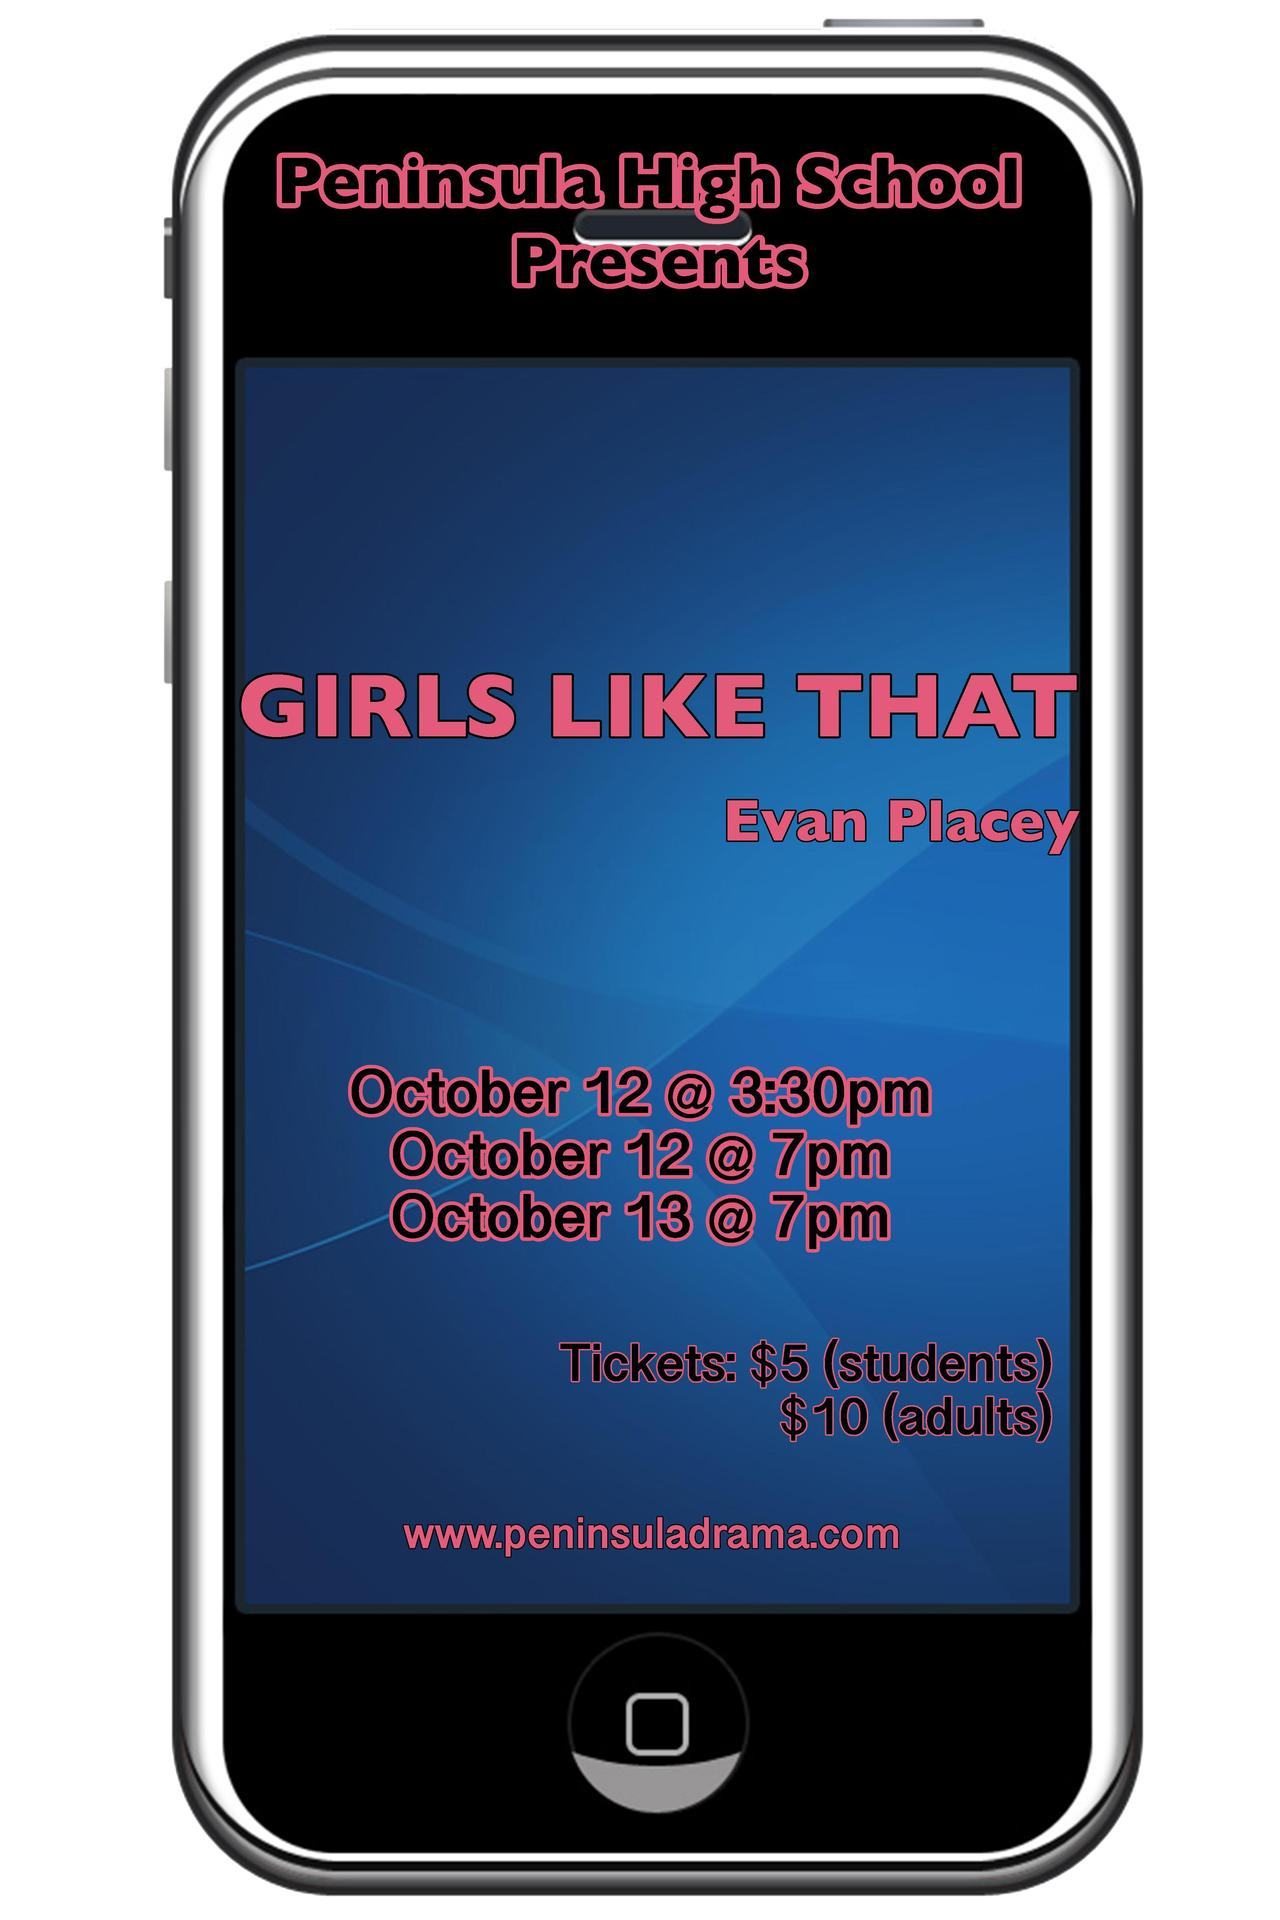 Girls Like That - Performing October 12 and 13 in the PAC